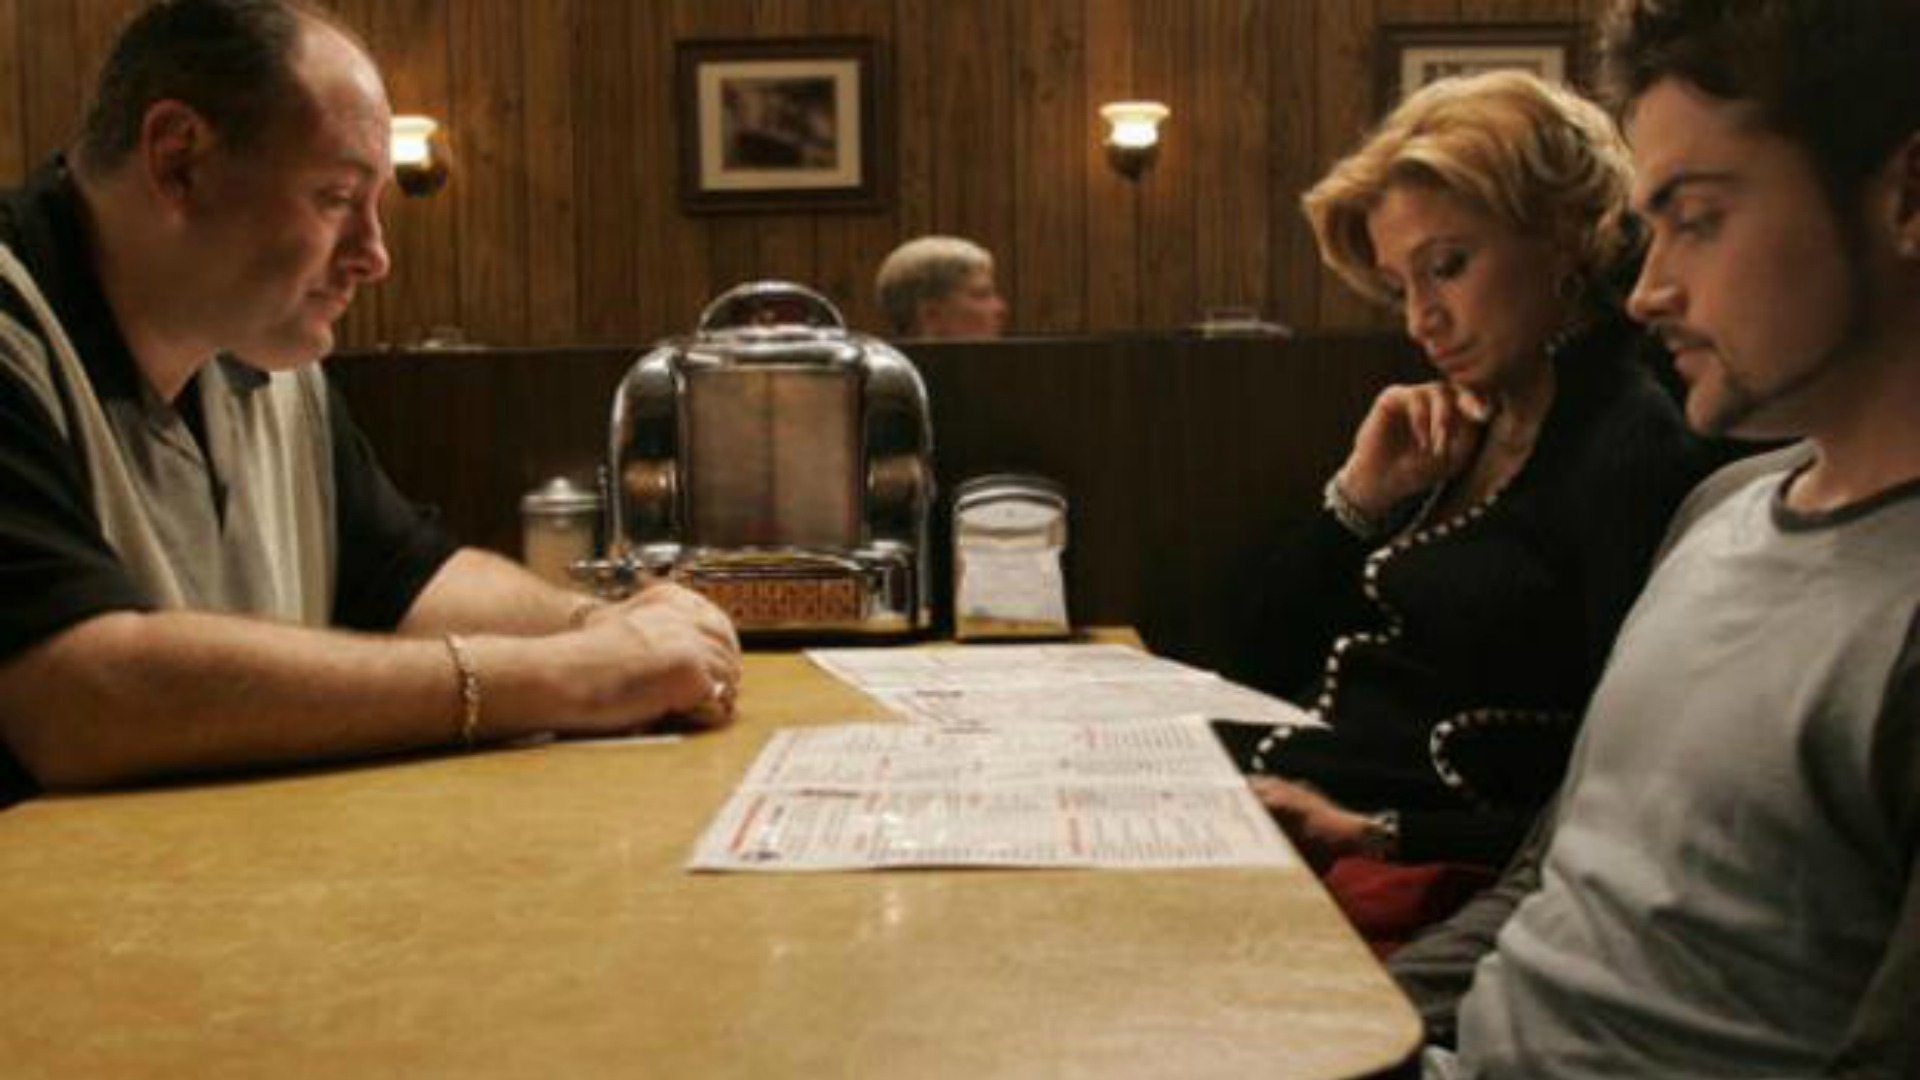 David Chase finally answers question about The Sopranos finale